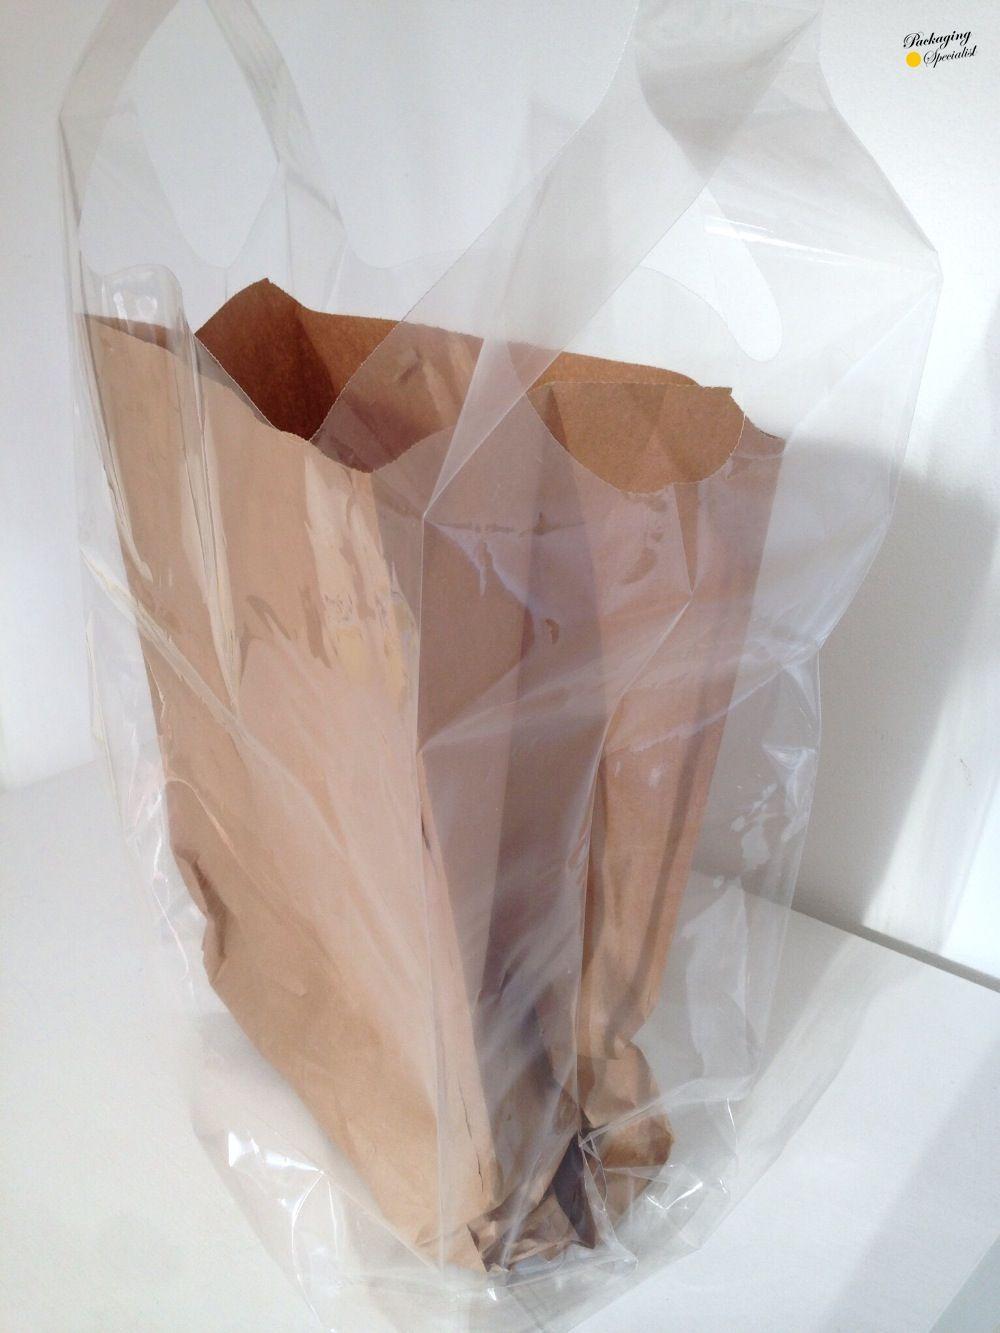 Design packaging packaging specialist packaging - 2 Pack Shopping Bag A Due Strati Shopping Bags E Packaging Packaging Specialist